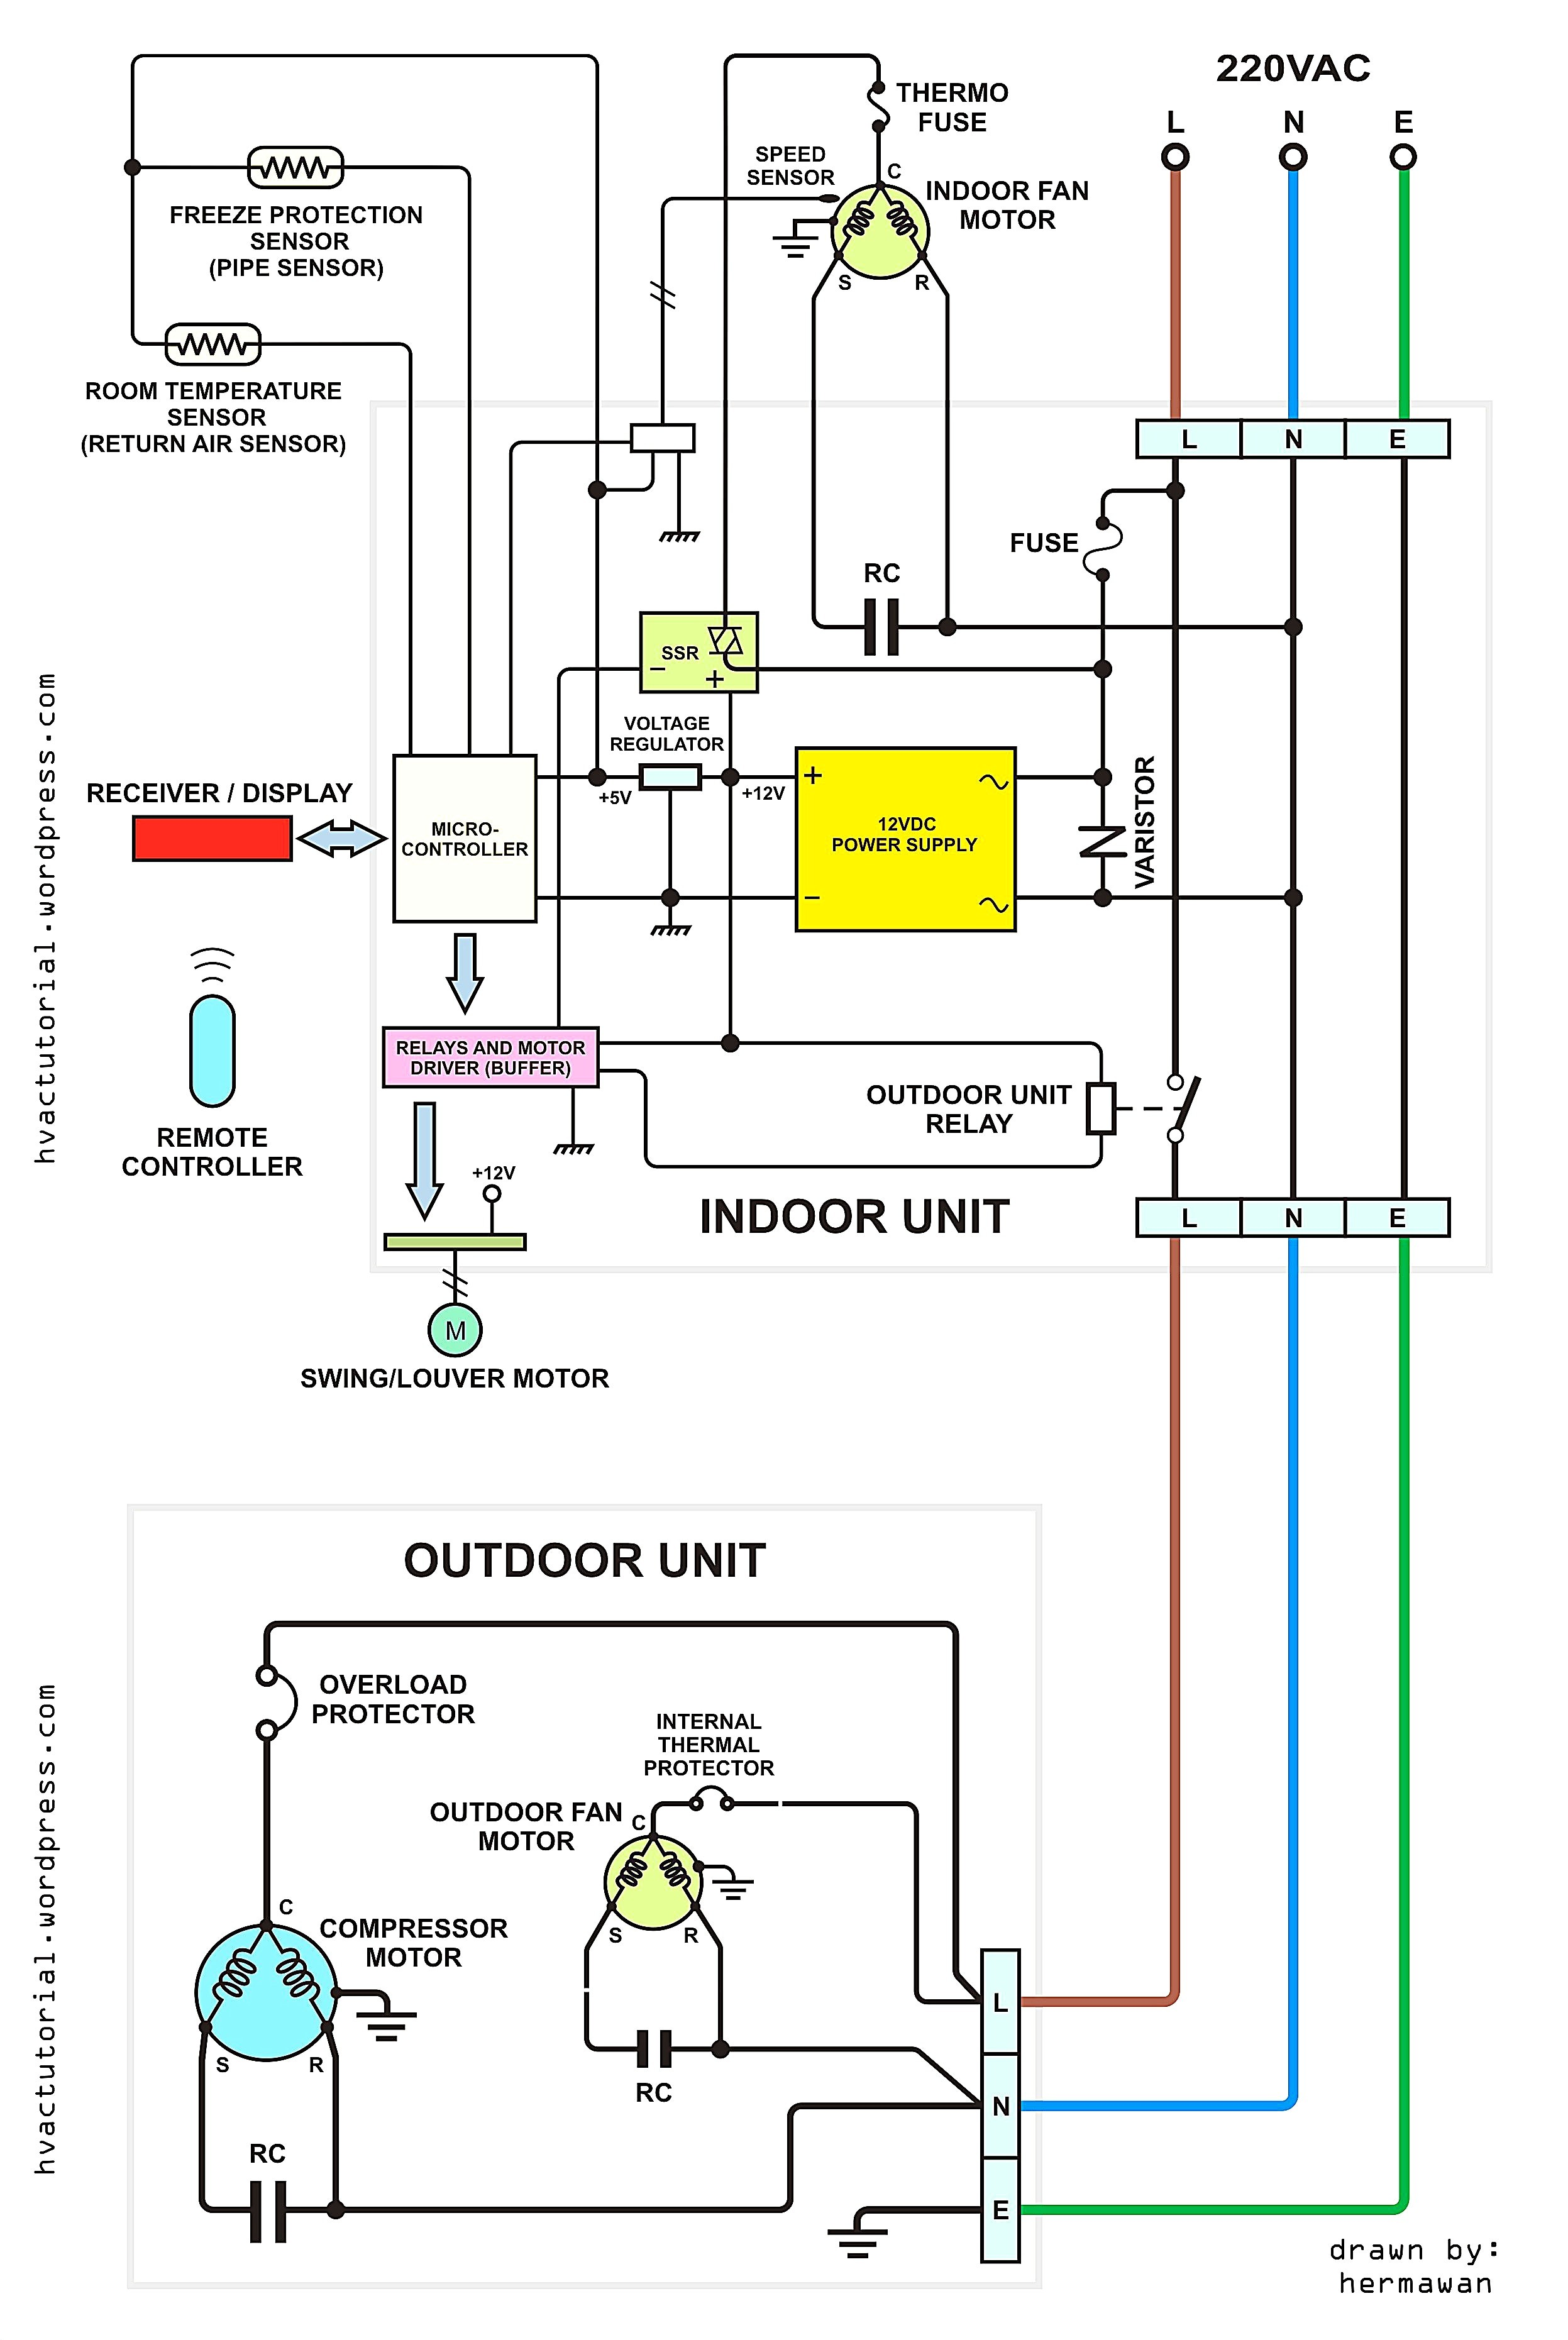 Heat Pump Thermostat Wiring Diagram Classy Shape Hvac Why Does Wires Going Within Carrier With